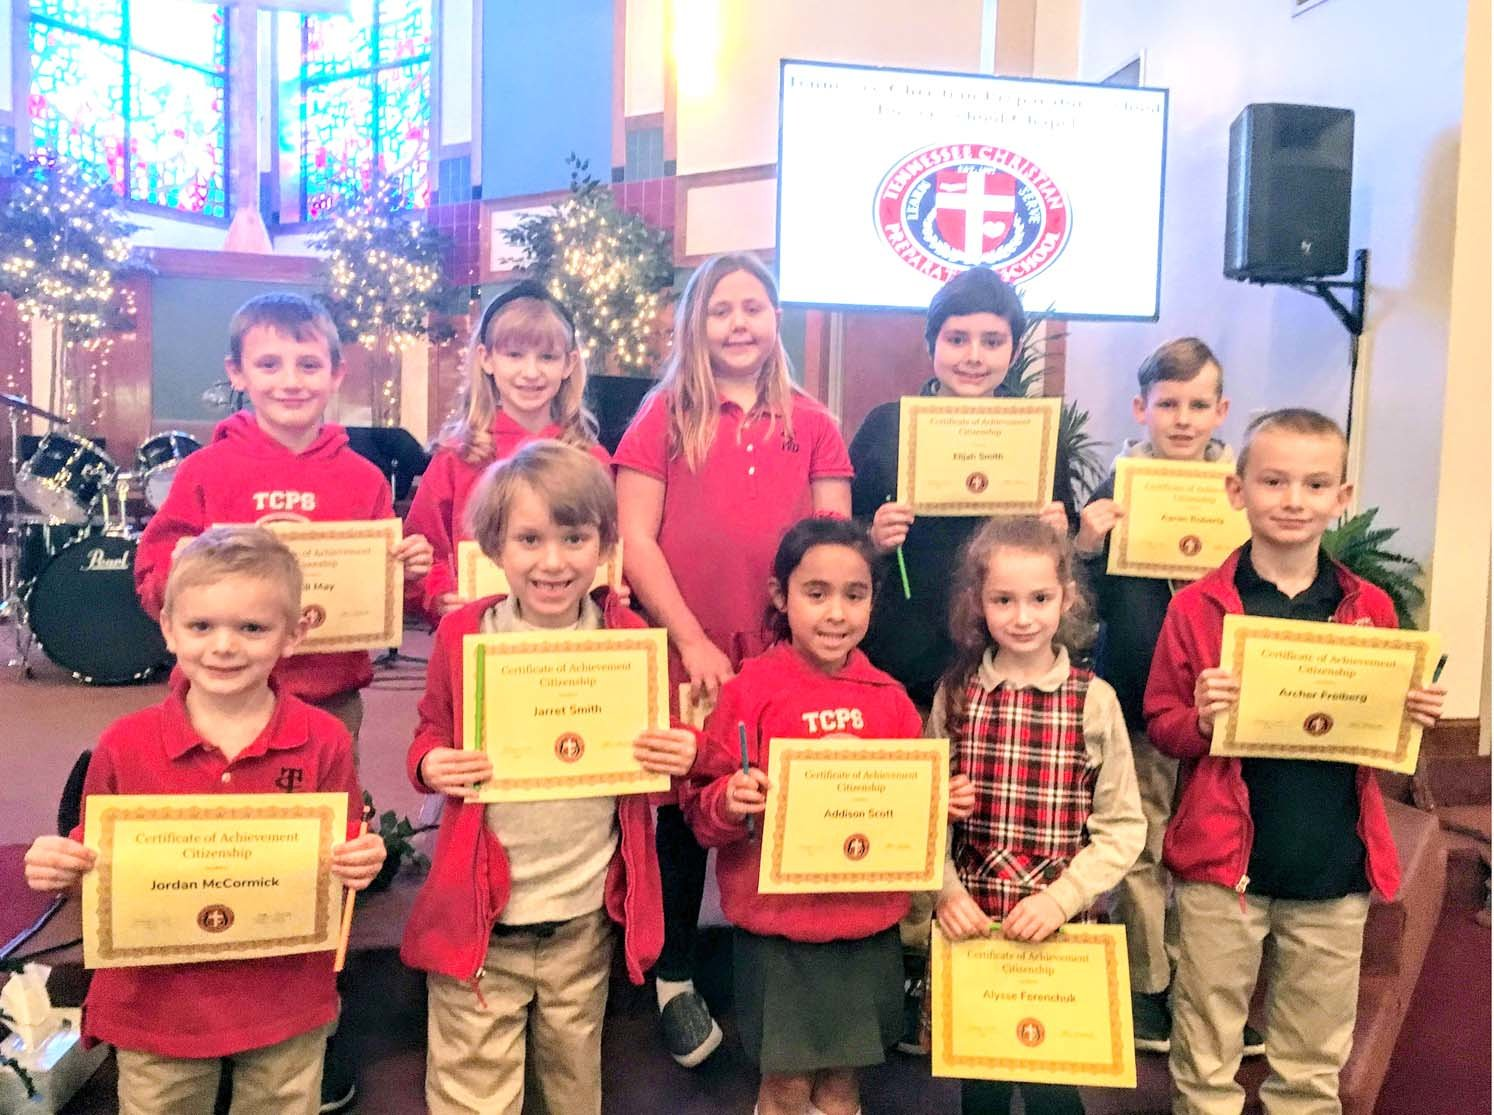 "TCPS character trait winners for February were recently recognized. Front row, from left, are Jordan McCormick, Jarret Smith, Addison Scott, Alysse Ferenchuk and Archer Freiberg. In back are Will May, Addie Beth Chord, Maggie Botts, Eljiah Smith and  Aaron Roberts. ""TCPS congratulates our Citizenship Character Trait winners for the month of February!"" said Lower School Principal Lacy Laman."